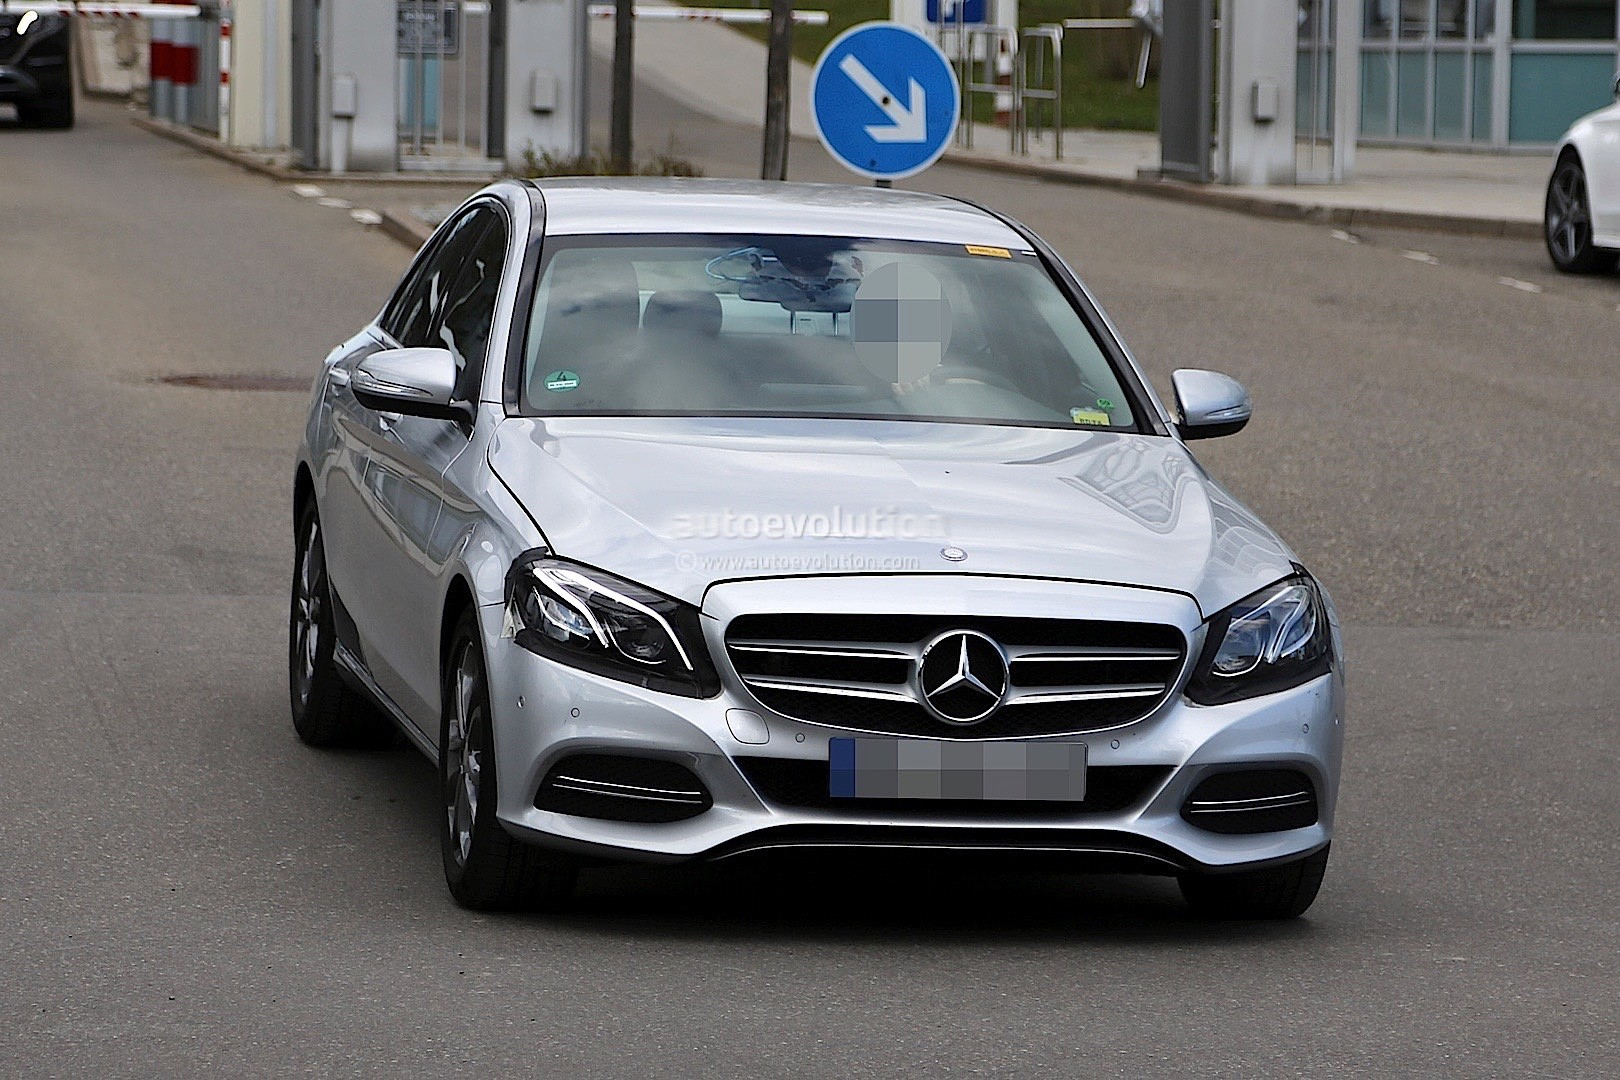 2017 Mercedes-Benz C-Class Facelift Spied in Germany ...